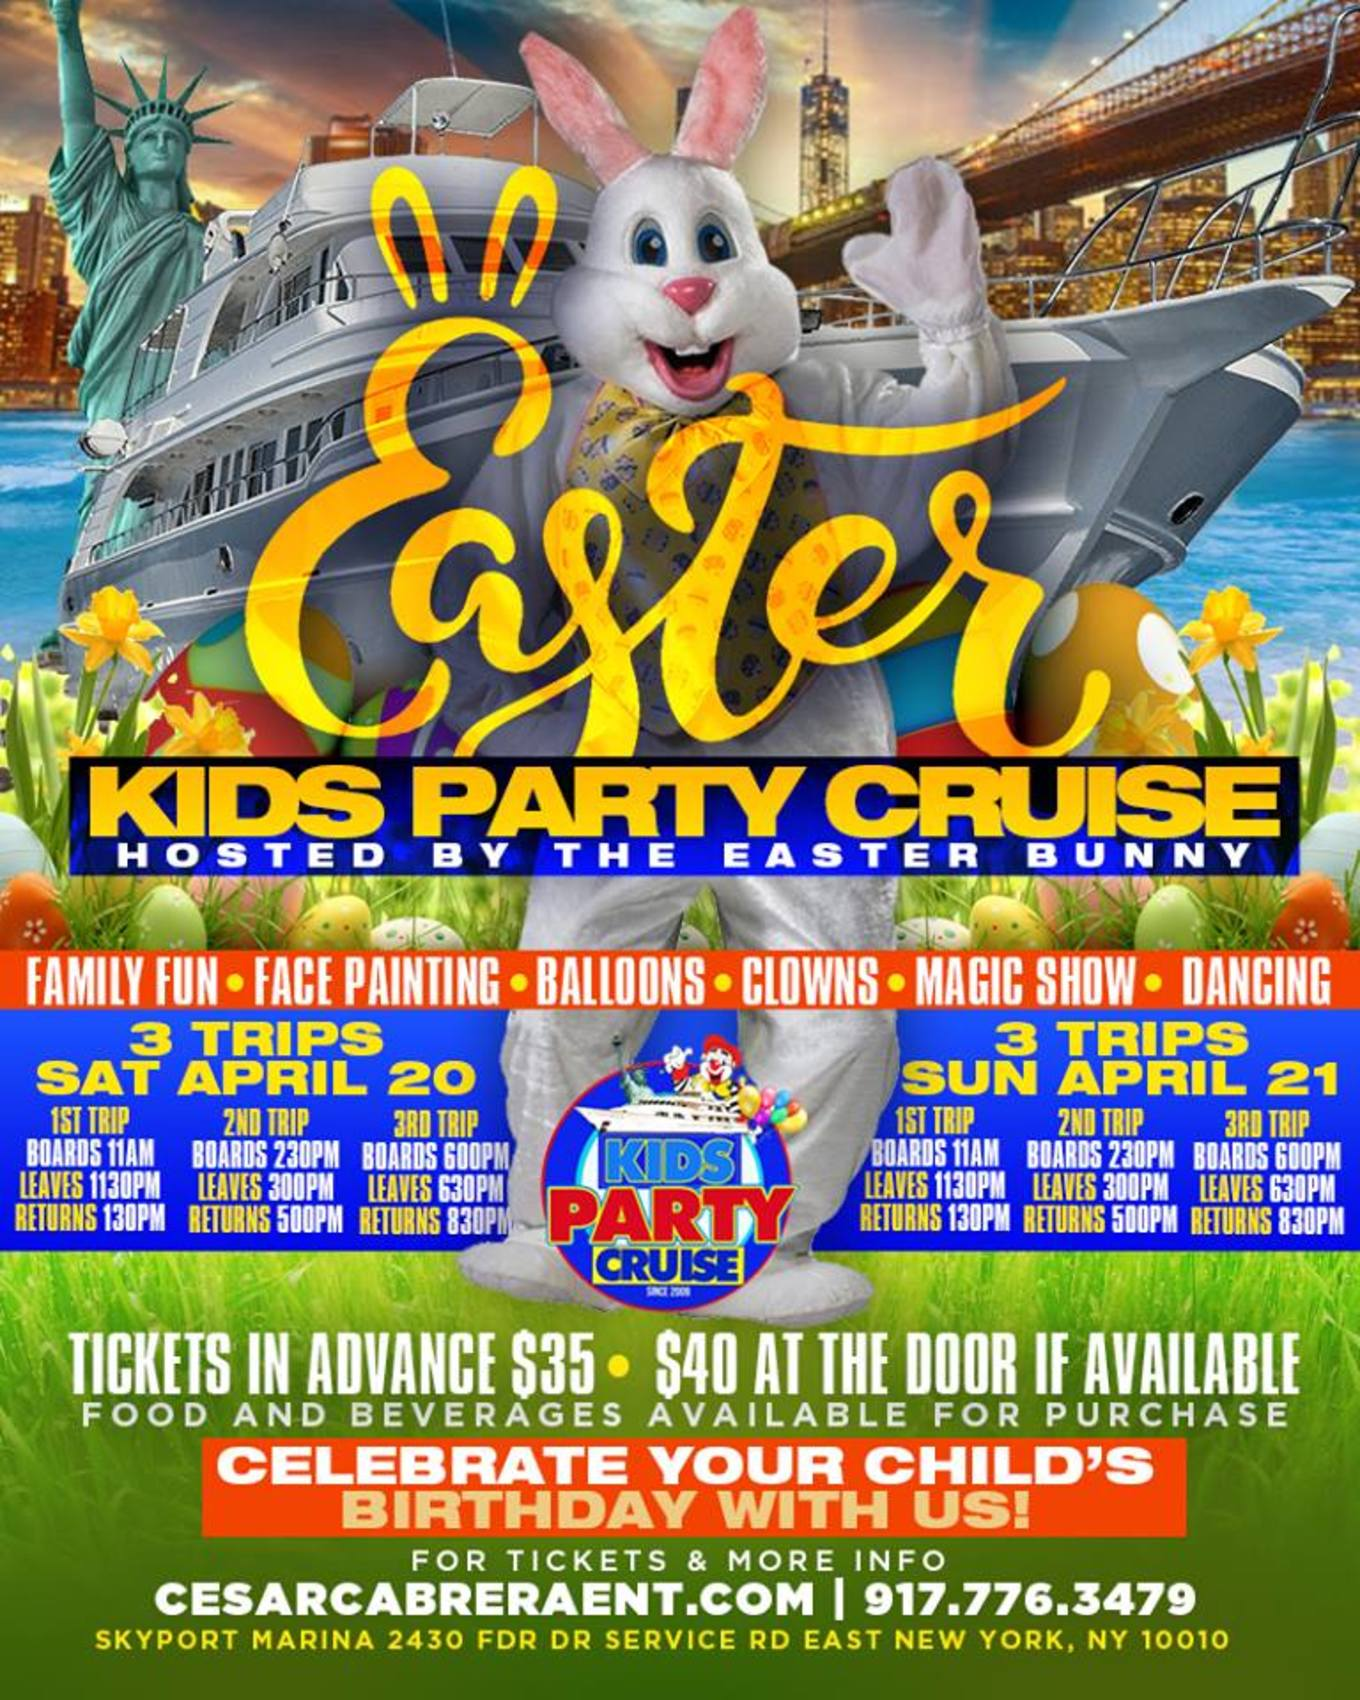 Easter Kids Boat Party Cruise - Tickets - Skyport Marina